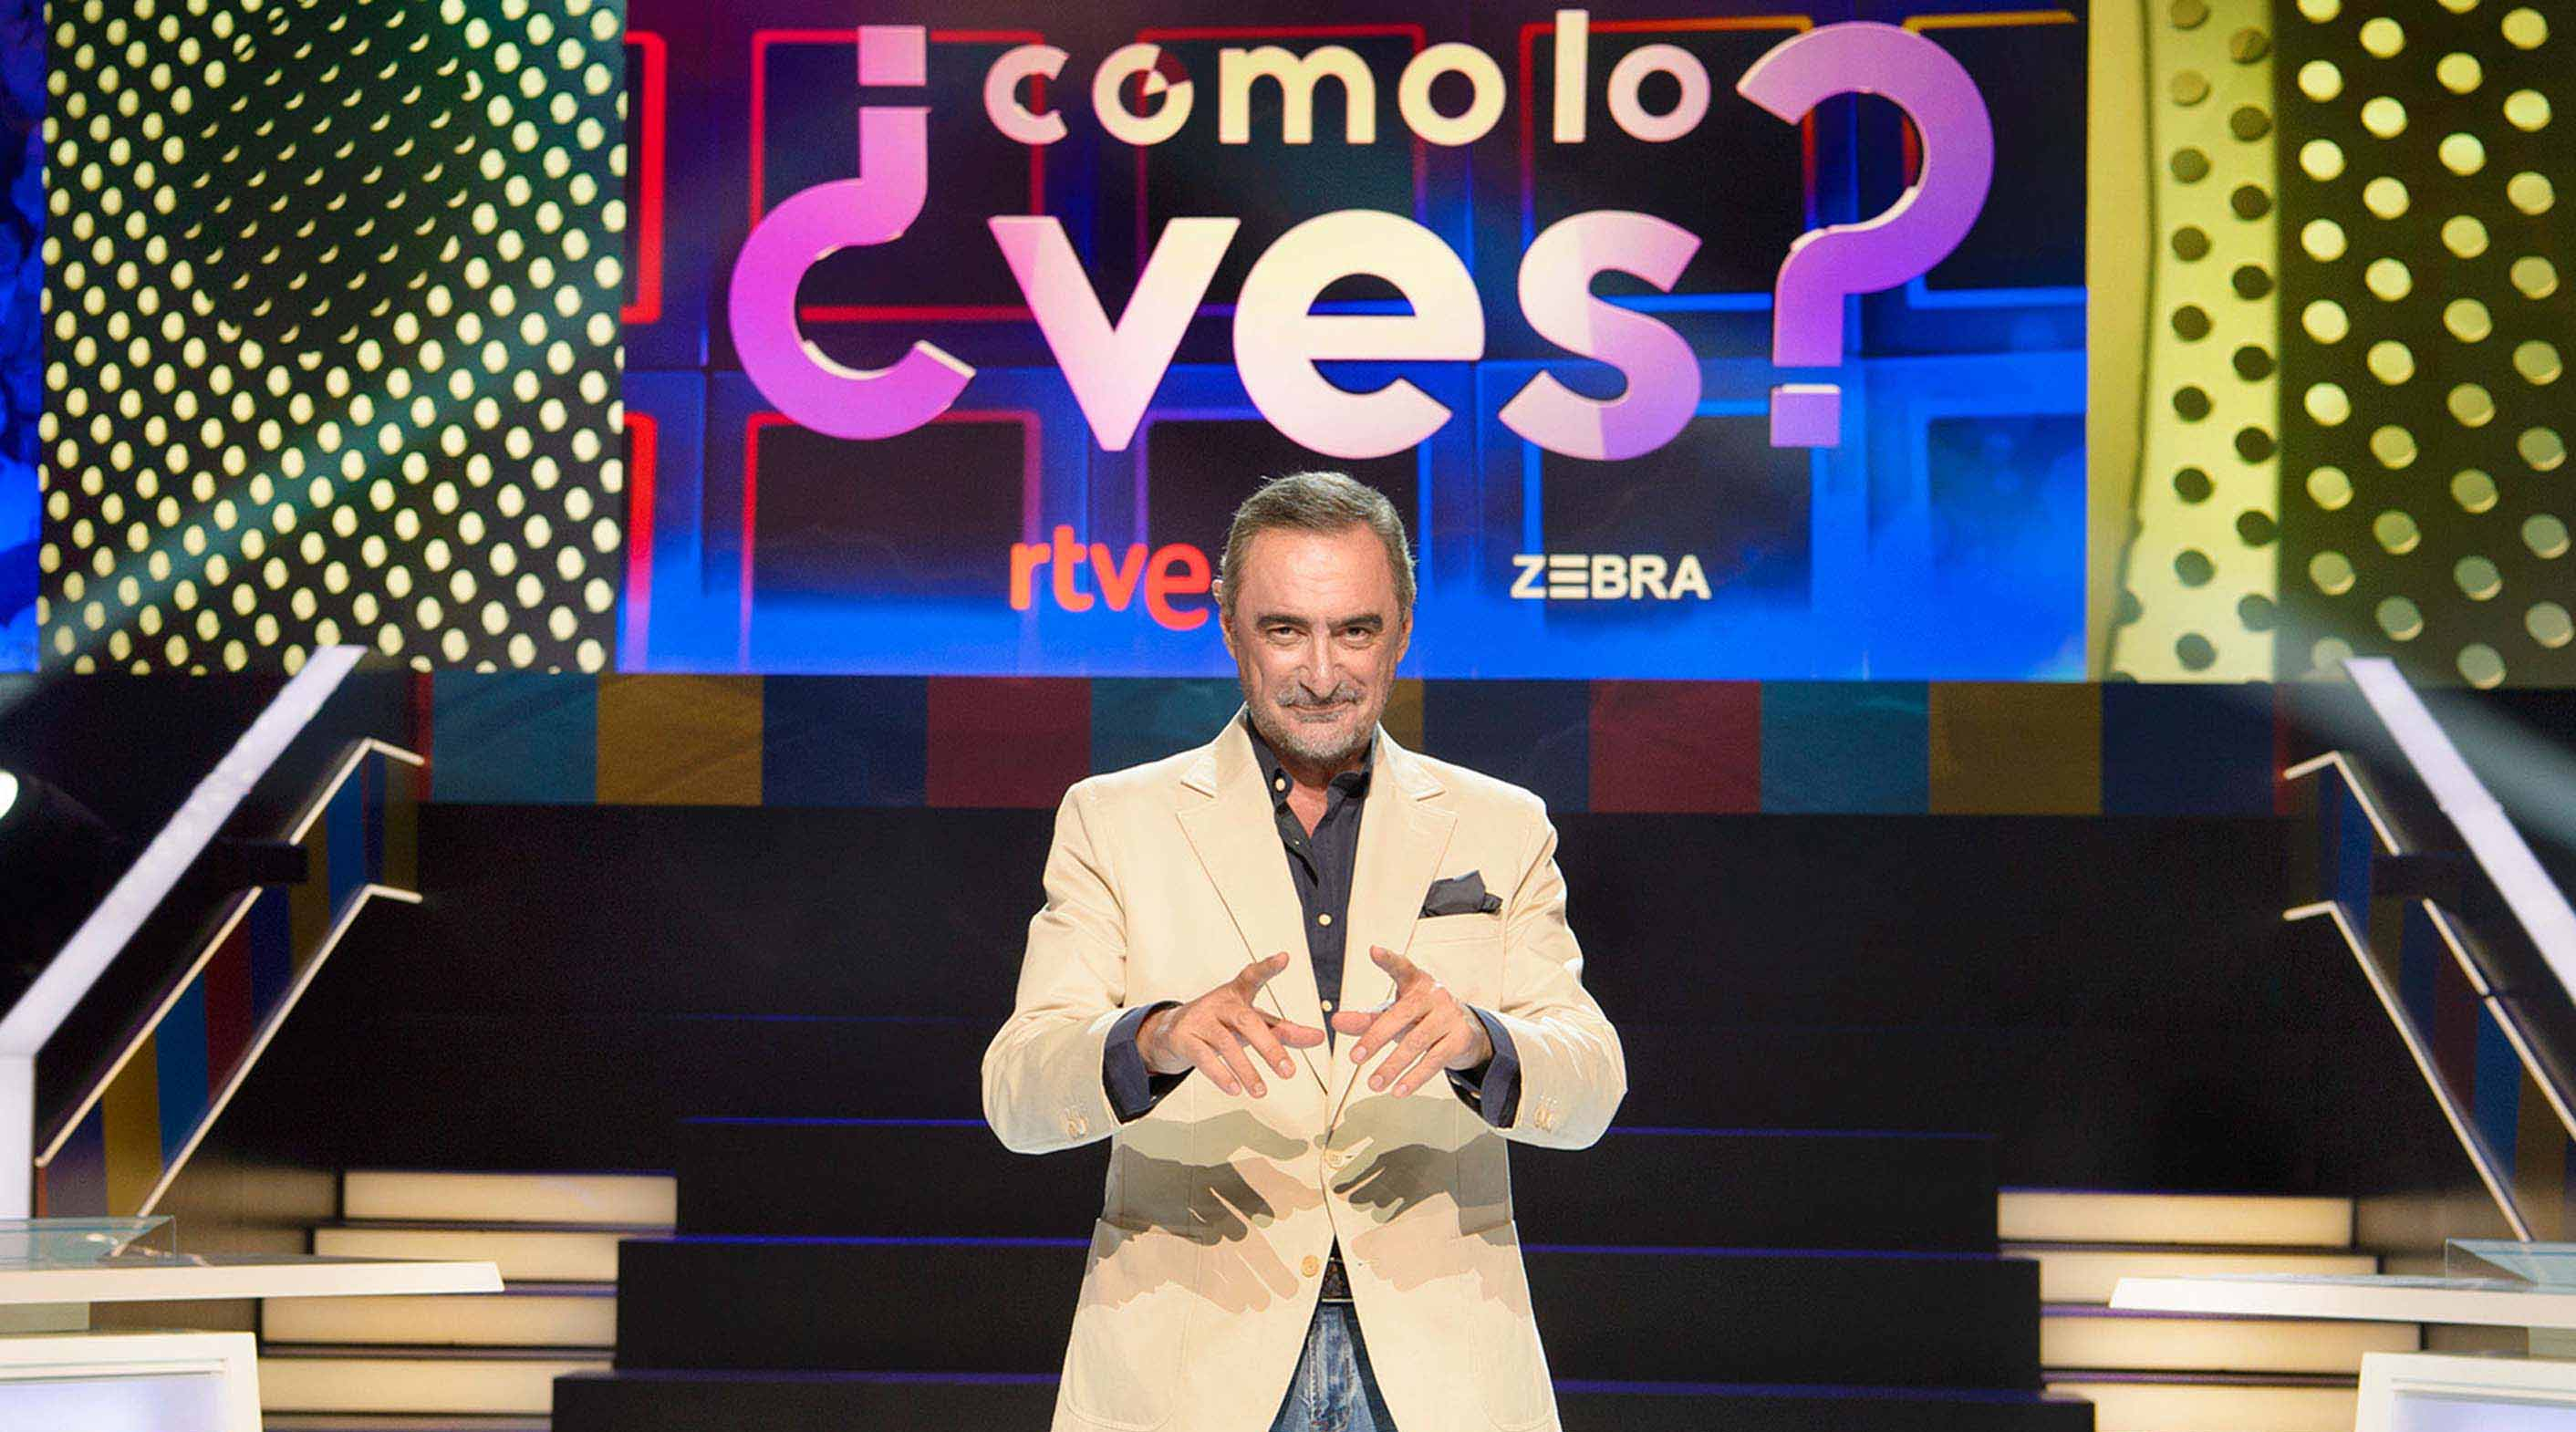 Carlos Herrera will present ¿Cómo lo ves?', A live program in prime time on La 1